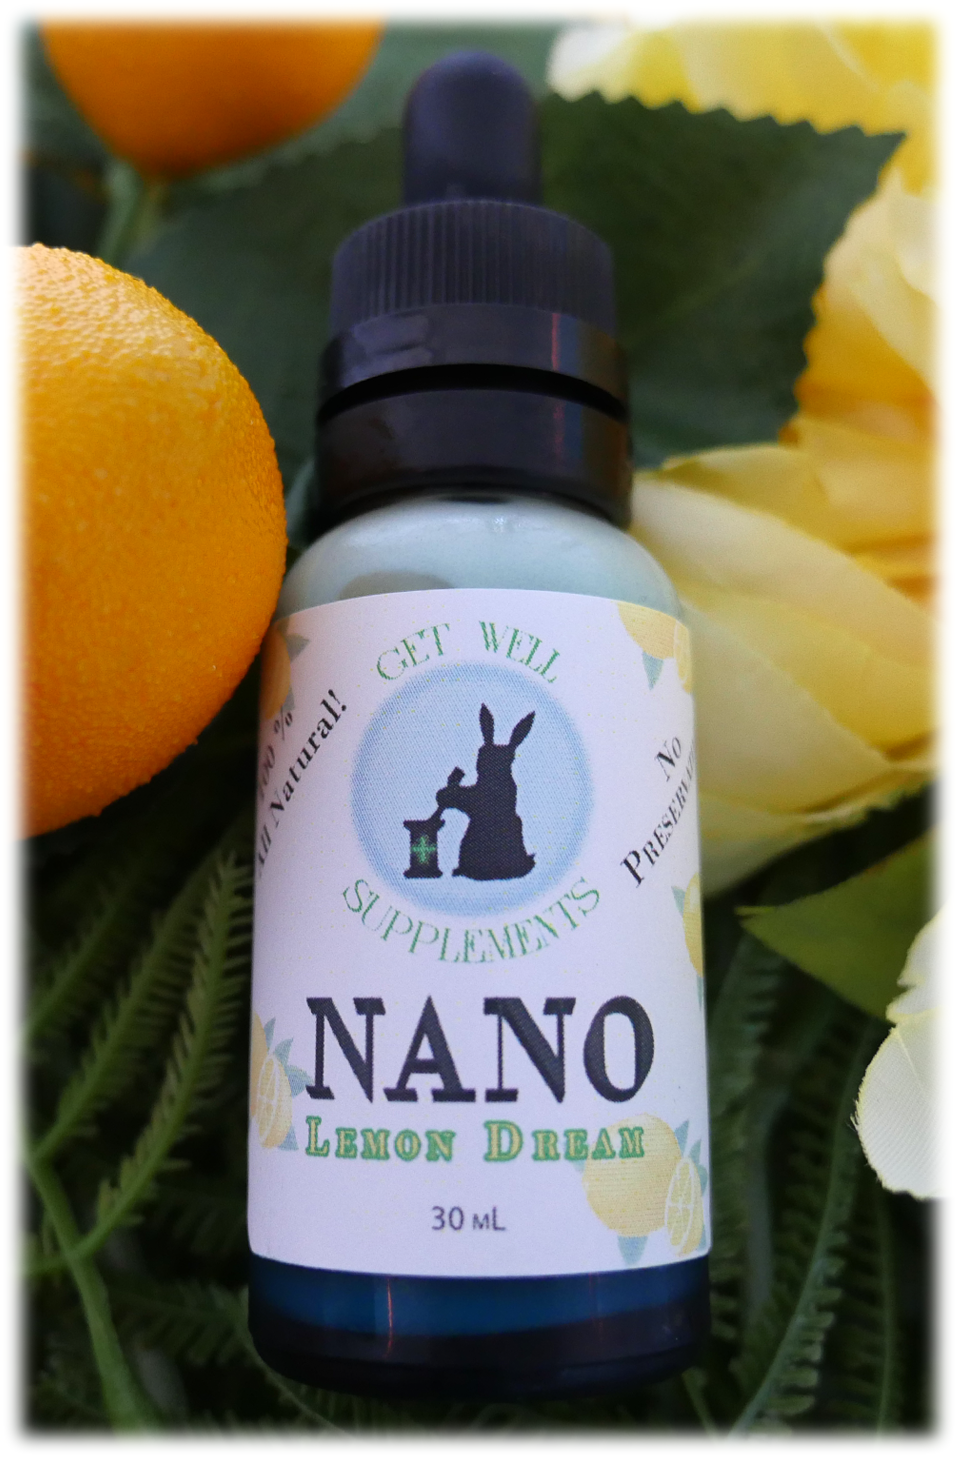 Nano Lemon Dream for Pain, Mood, & Immune Support